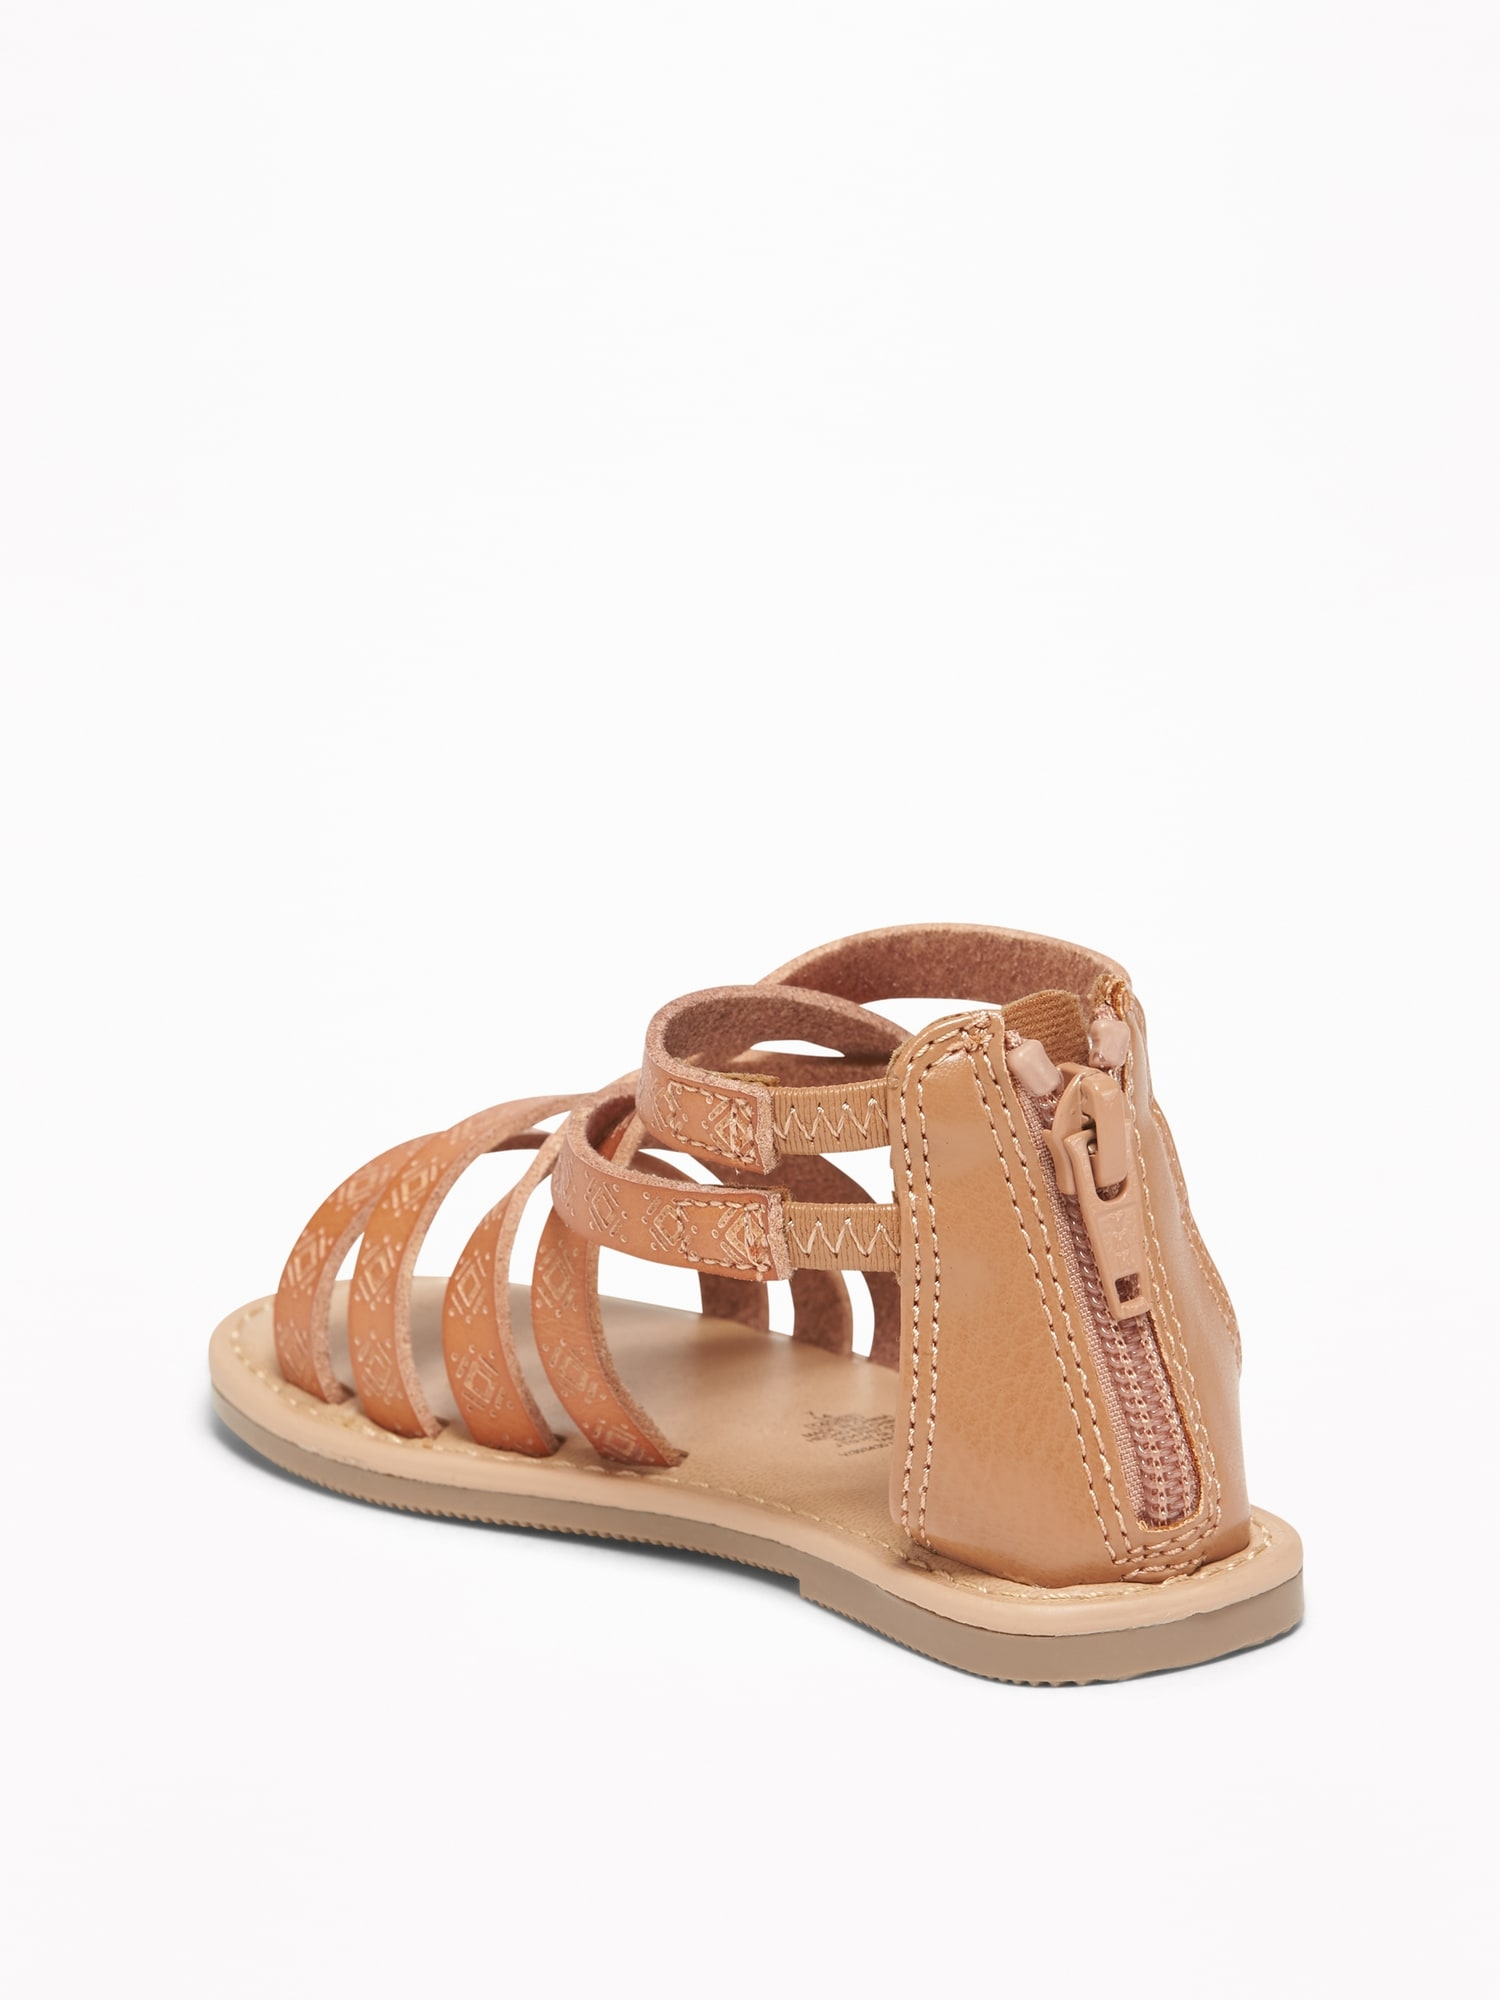 0852fc9308bc Embossed Faux-Leather Gladiator Sandals For Toddler Girls ...